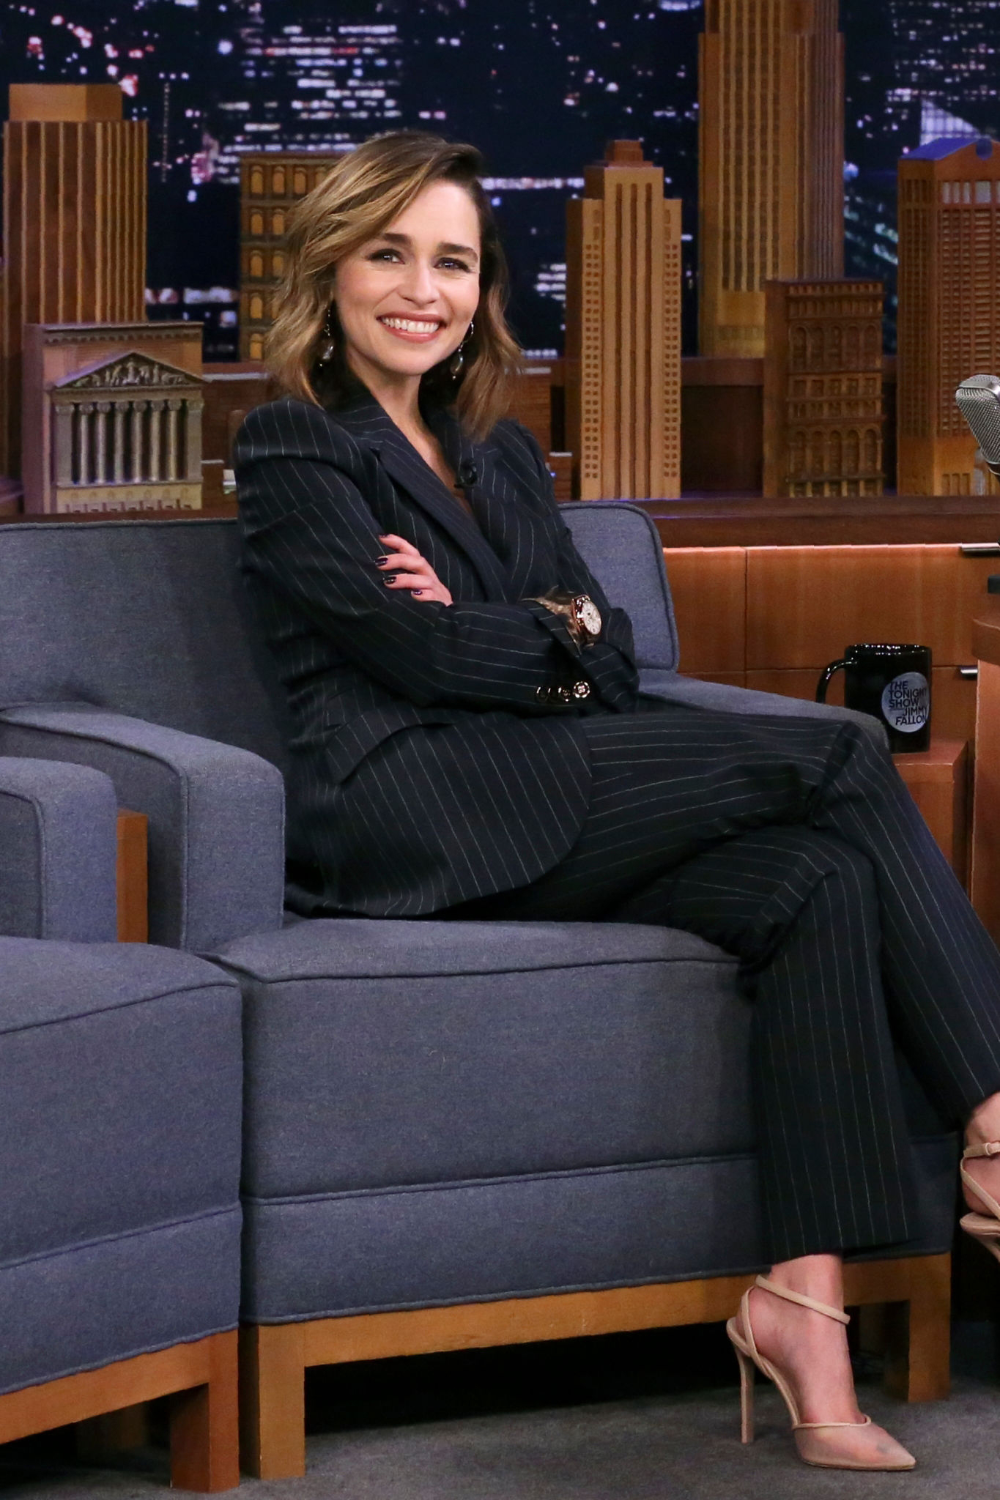 2019 - The Tonight Show Starring Jimmy Fallon (October 30) - 20191030 TheTonightShowJimmyFallon 0002 - Adoring Emilia Clarke - The Photo Gallery